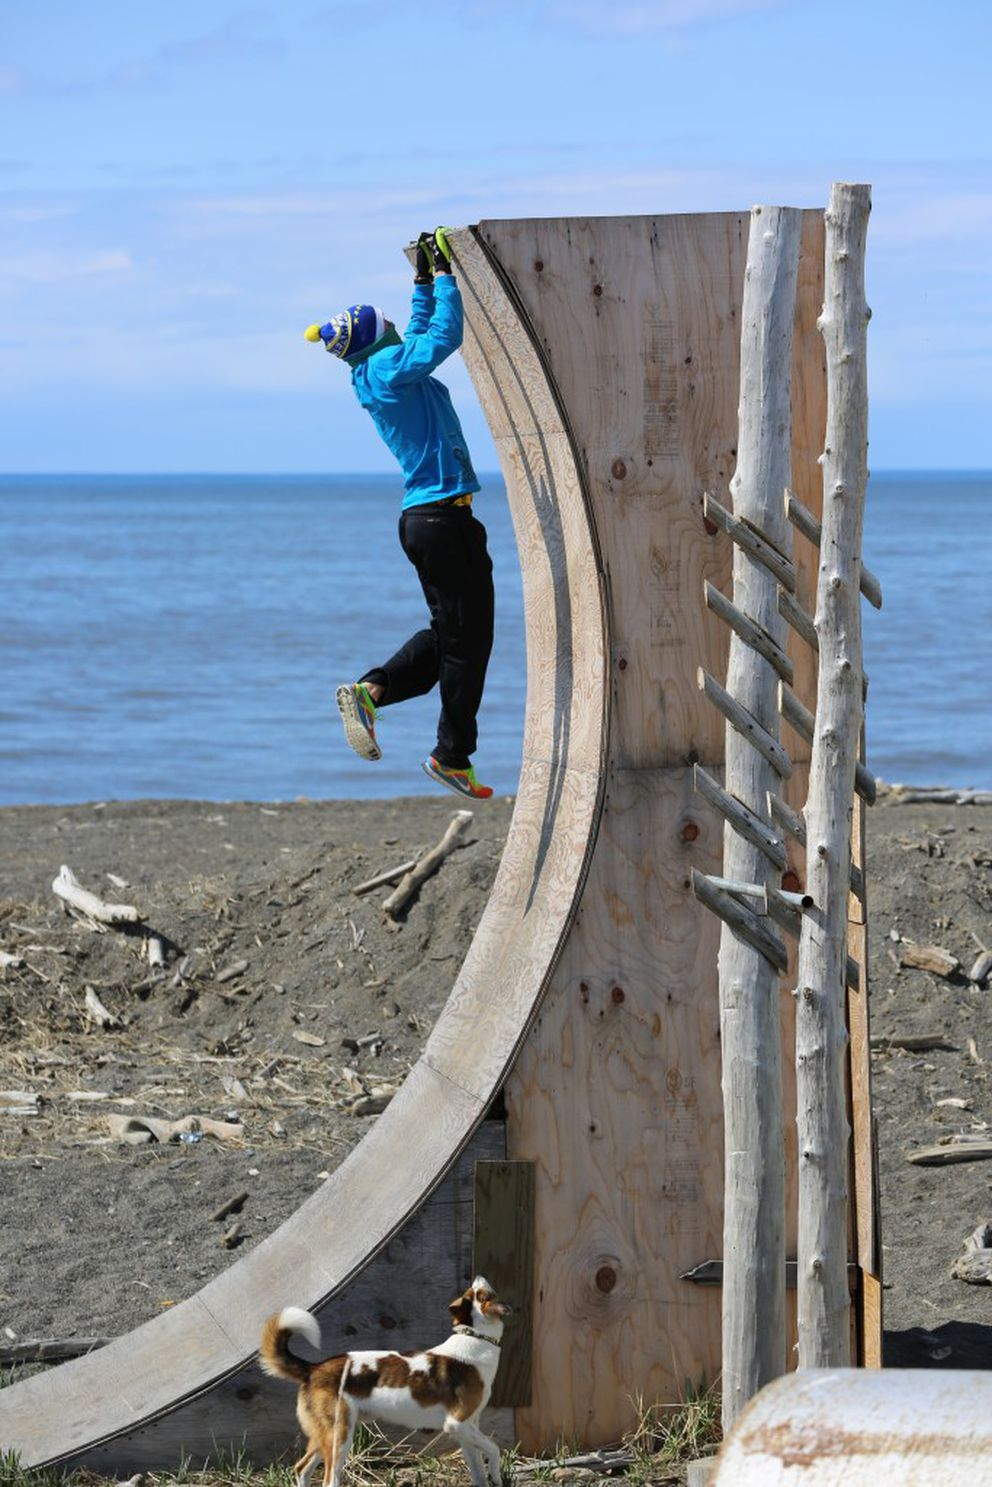 Nick Hanson of Unalakleet works out in May 2015 on his obstacle course. His dog Snapchat watches as Hanson hangs off the top of the warped wall. (Bret Hanson)